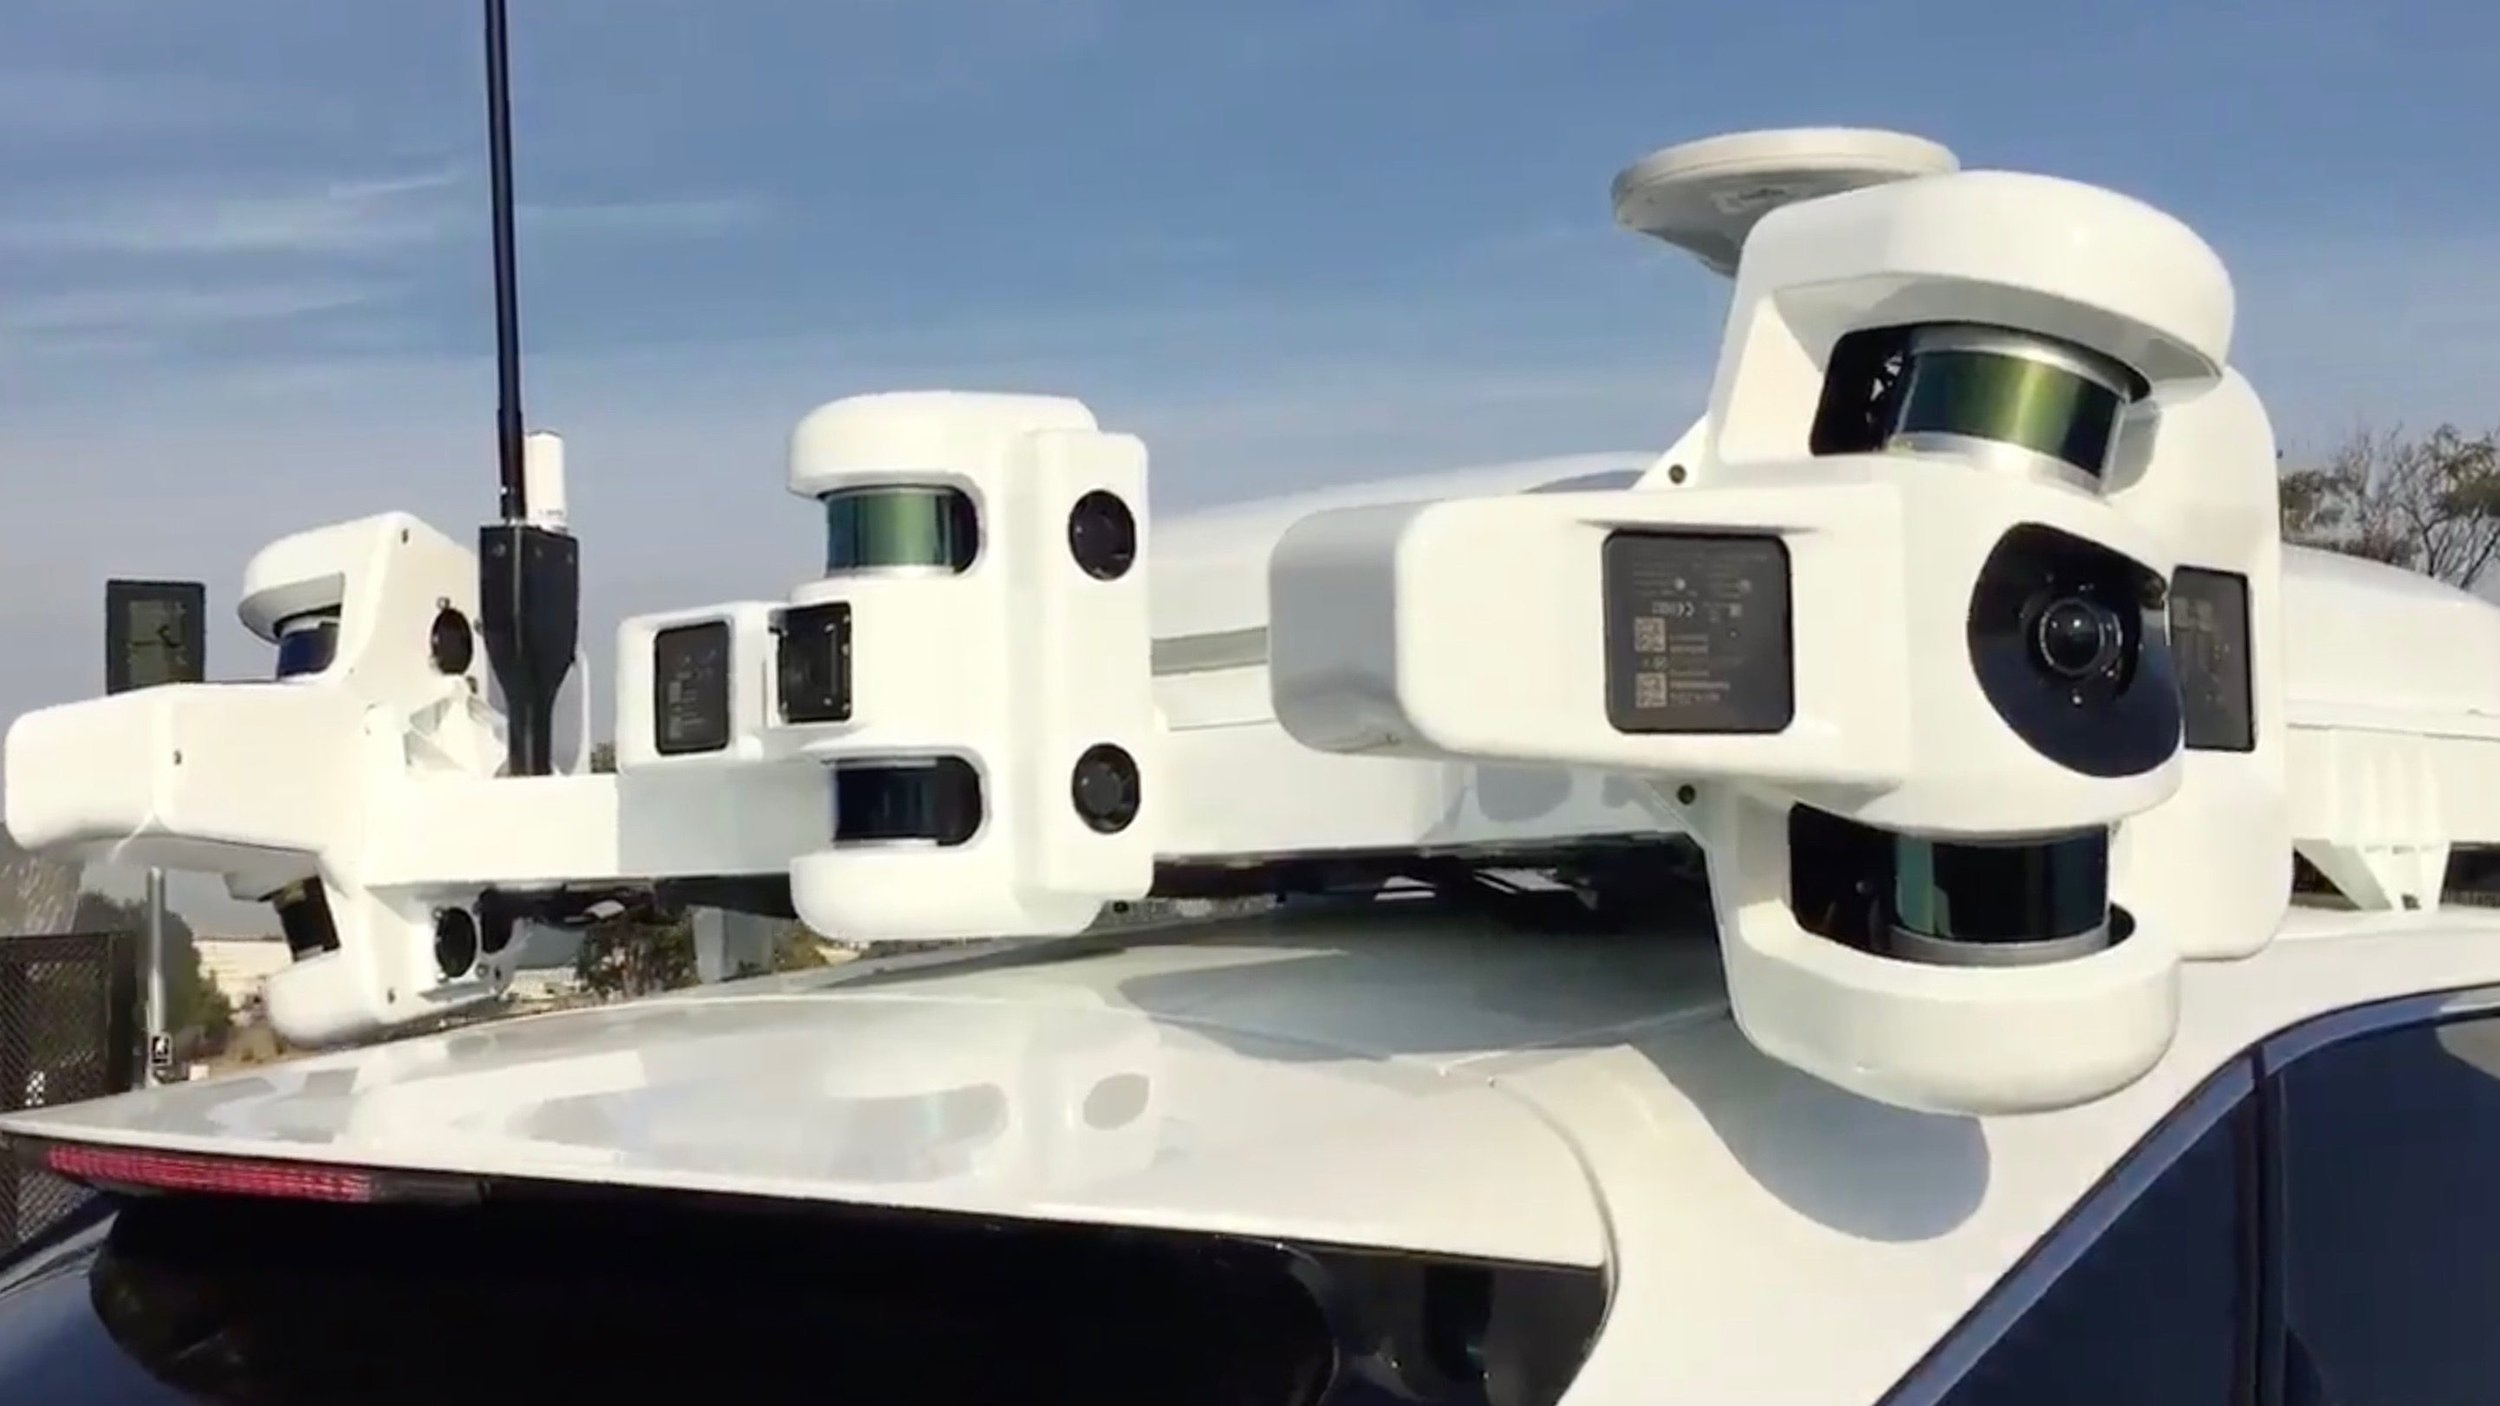 Apple now has 70 driverless cars undergoing testing on California roads. Image credit - Apple.